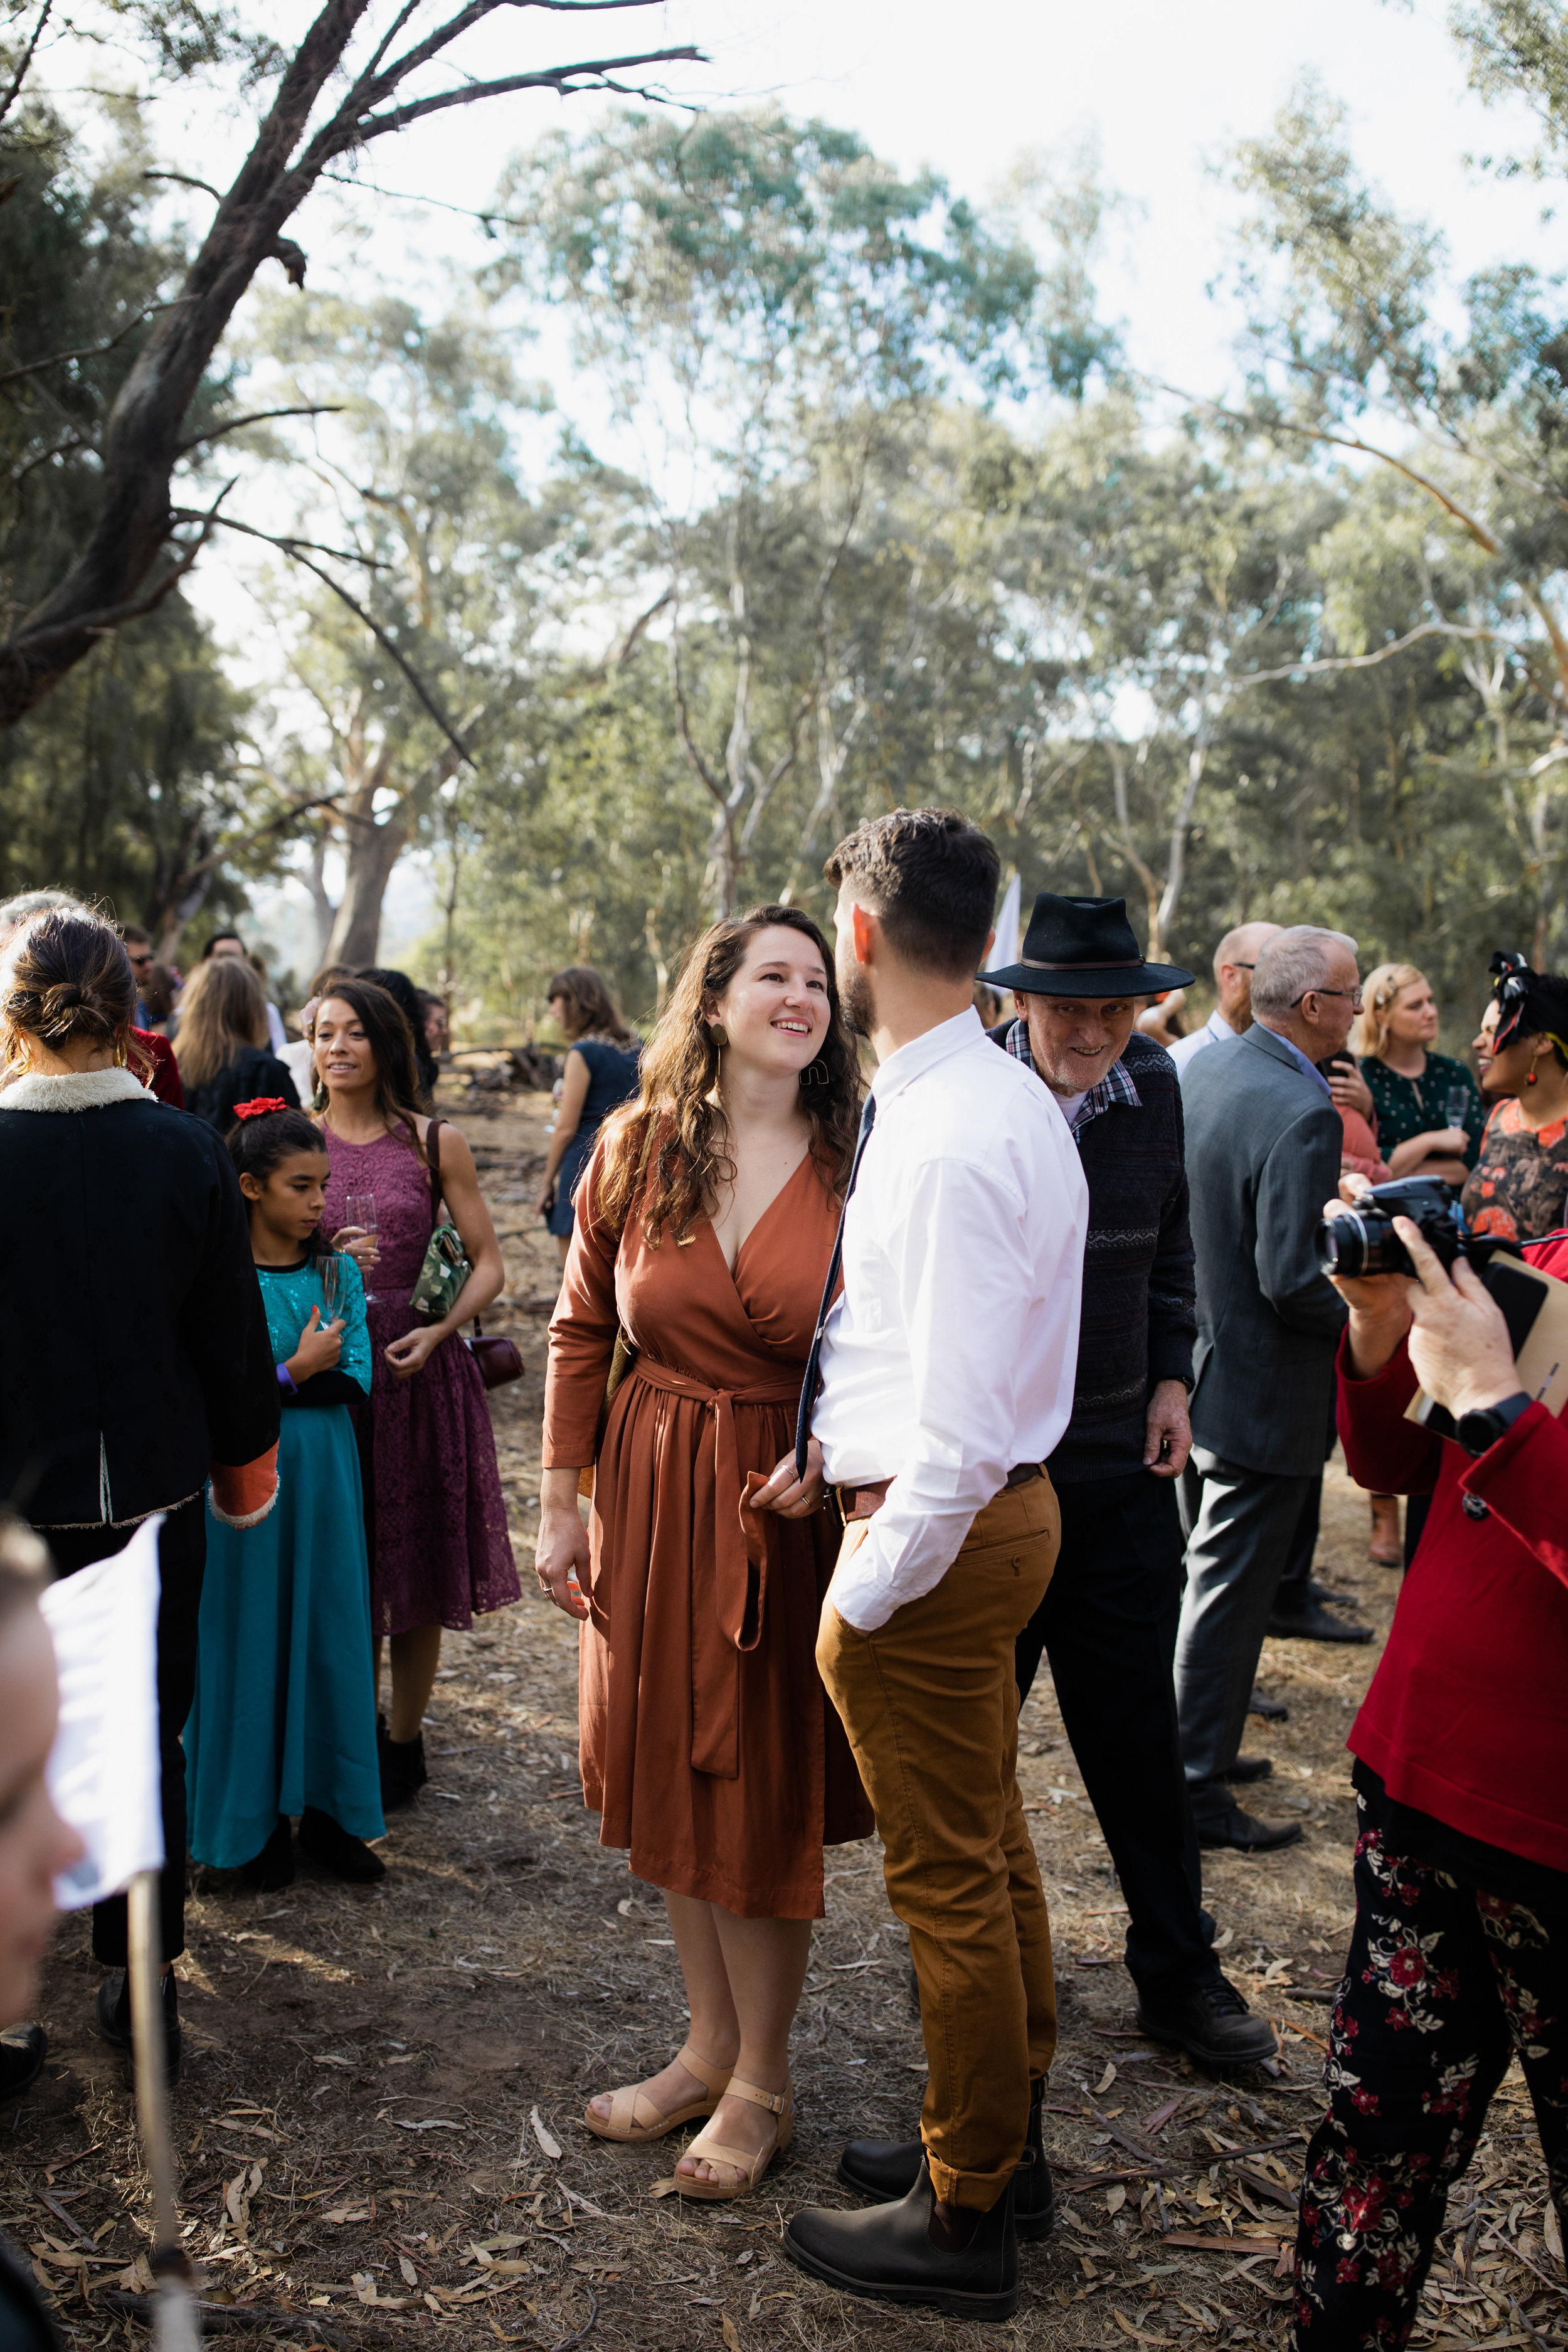 I-Got-You-Babe-Weddings-Claire-Dave-Trawol-VIC-Country-Property-Wedding157.JPG